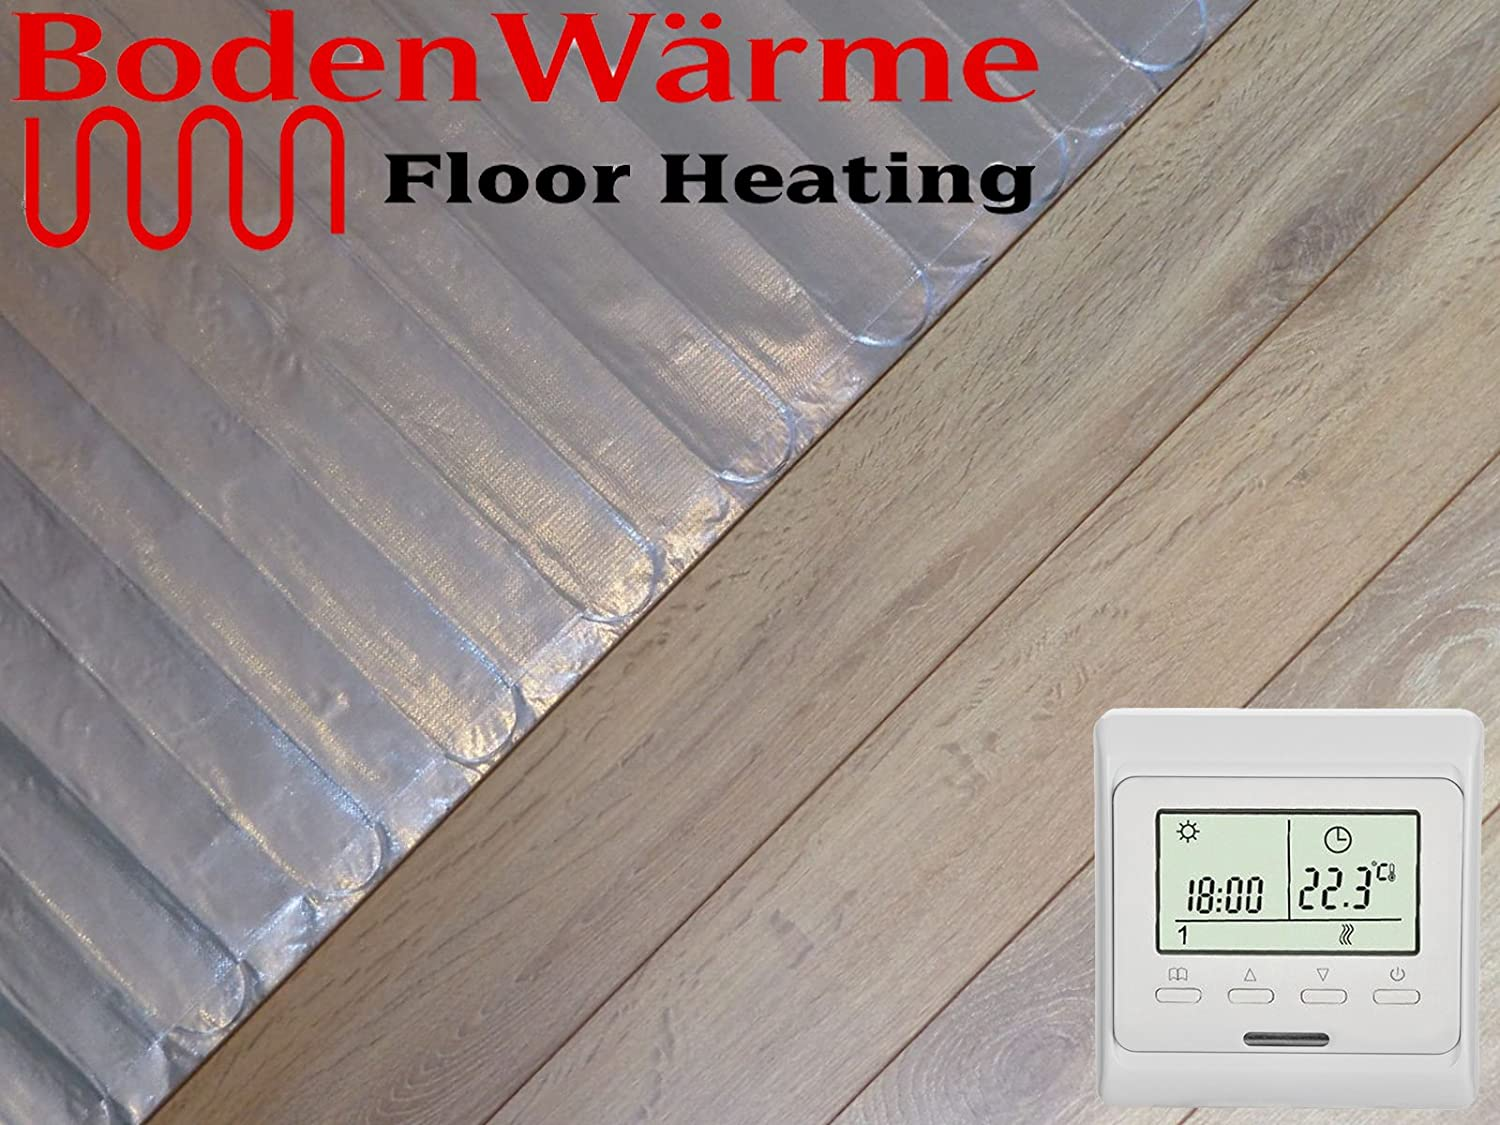 Electric Under Laminate / Wood Foil Underfloor Heating Mat Kit (3.5m sq, Excluding Thermostat)